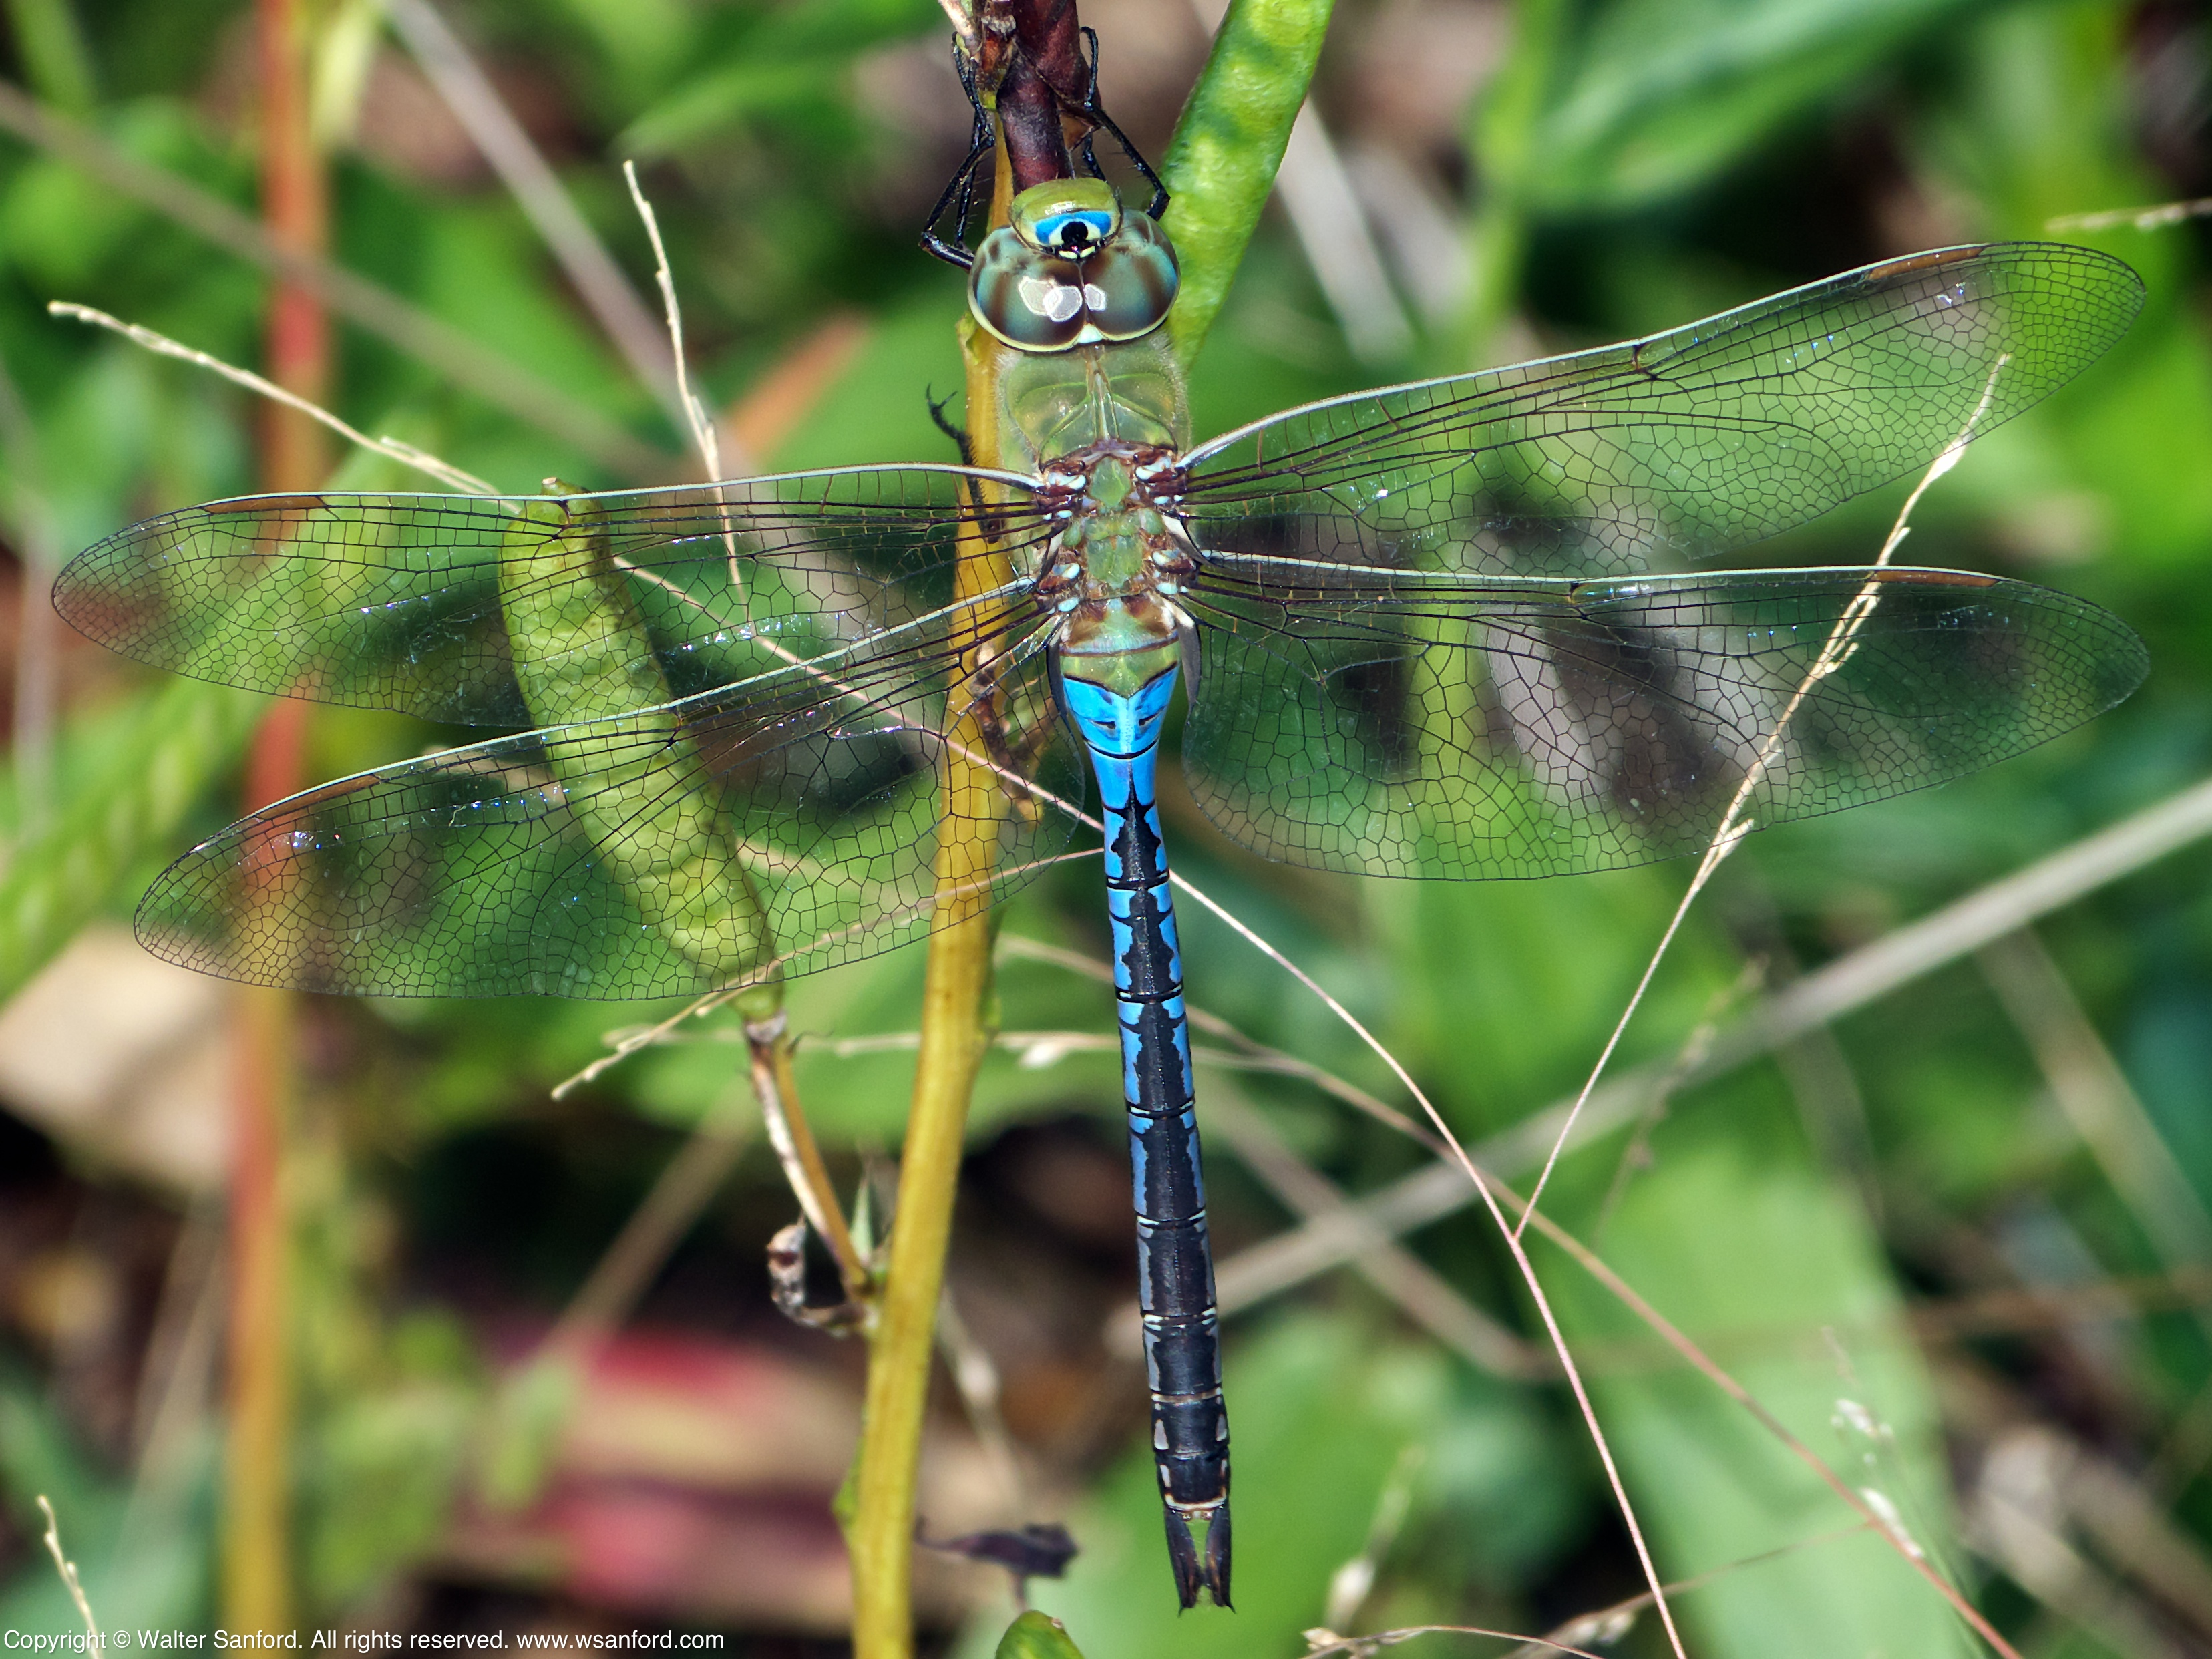 Green dragonfly pictures - photo#35